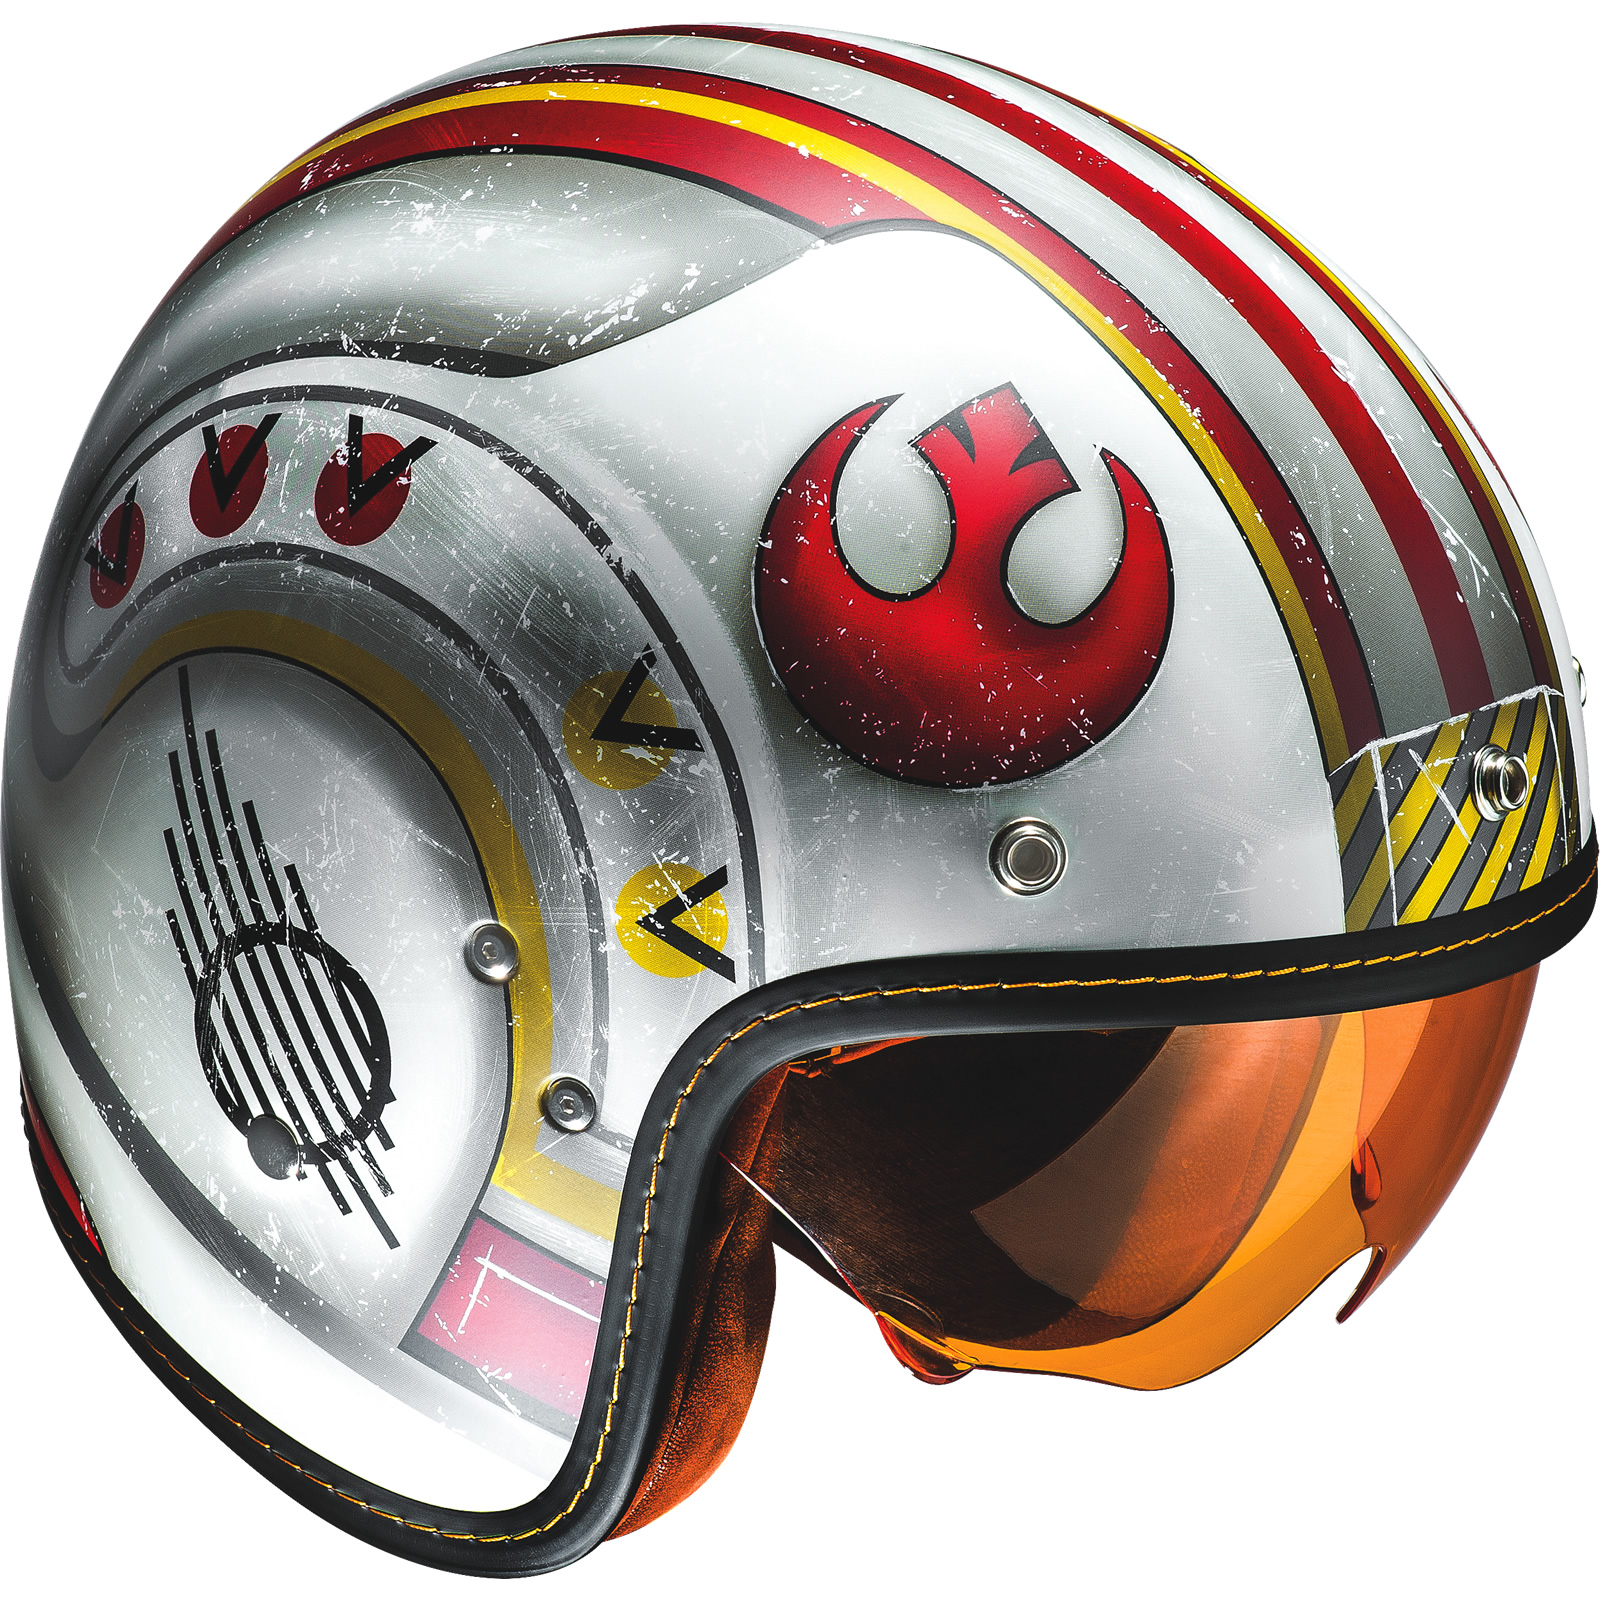 hjc fg 70s x wing fighter pilot open face motorcycle helmet star wars jet urban ebay. Black Bedroom Furniture Sets. Home Design Ideas